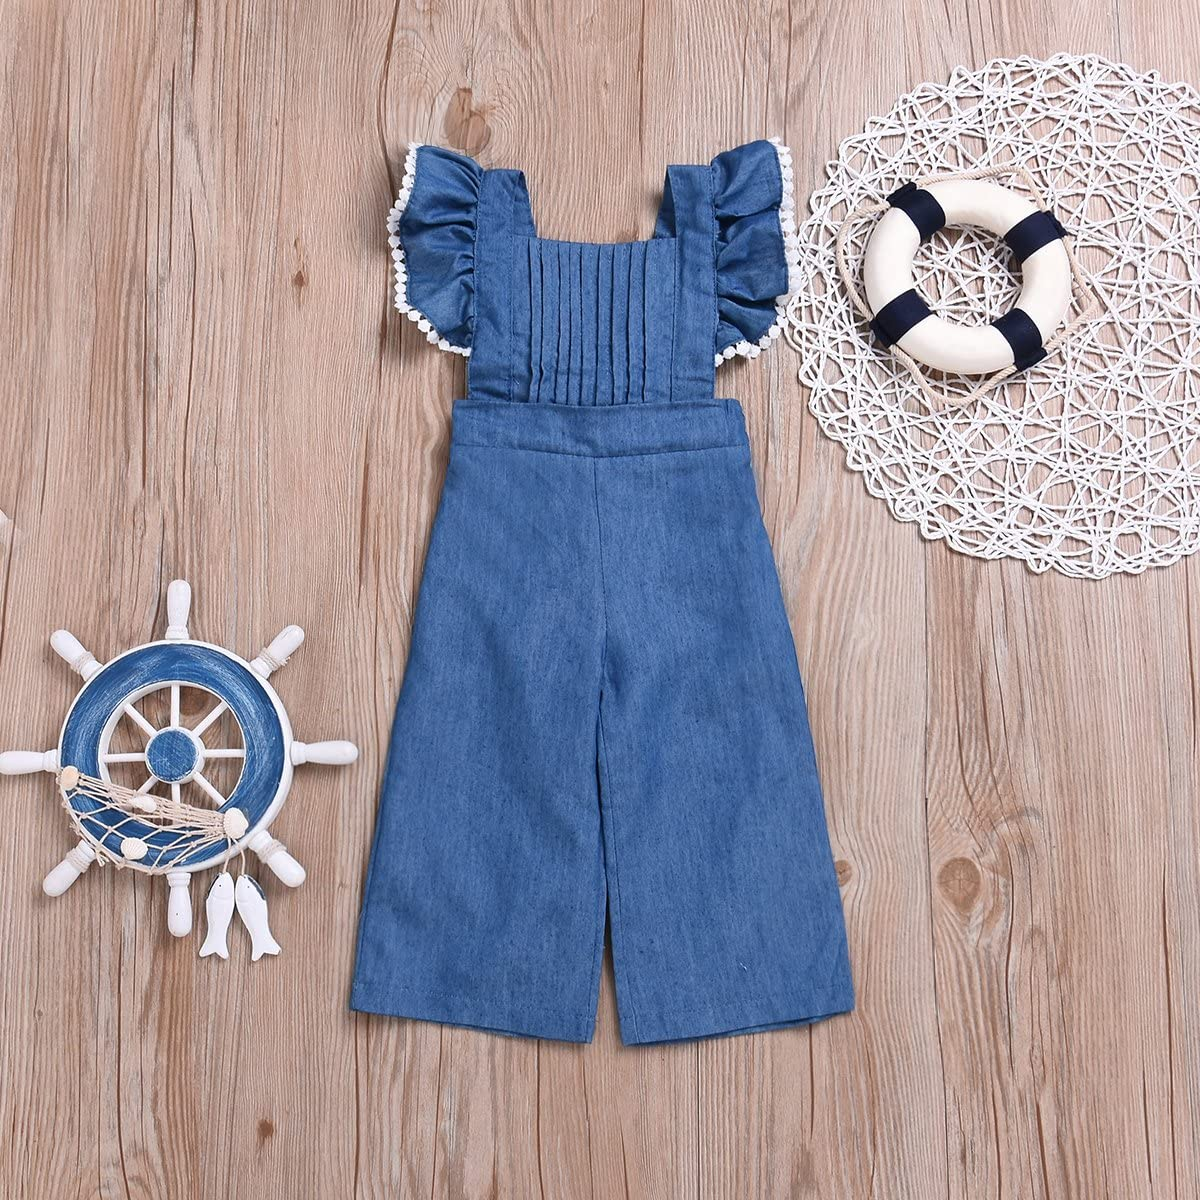 Mubineo Toddler Baby Girl Ruffle Sleeve Bell Bottom Demin Romper Jumpsuit Jeans Pants